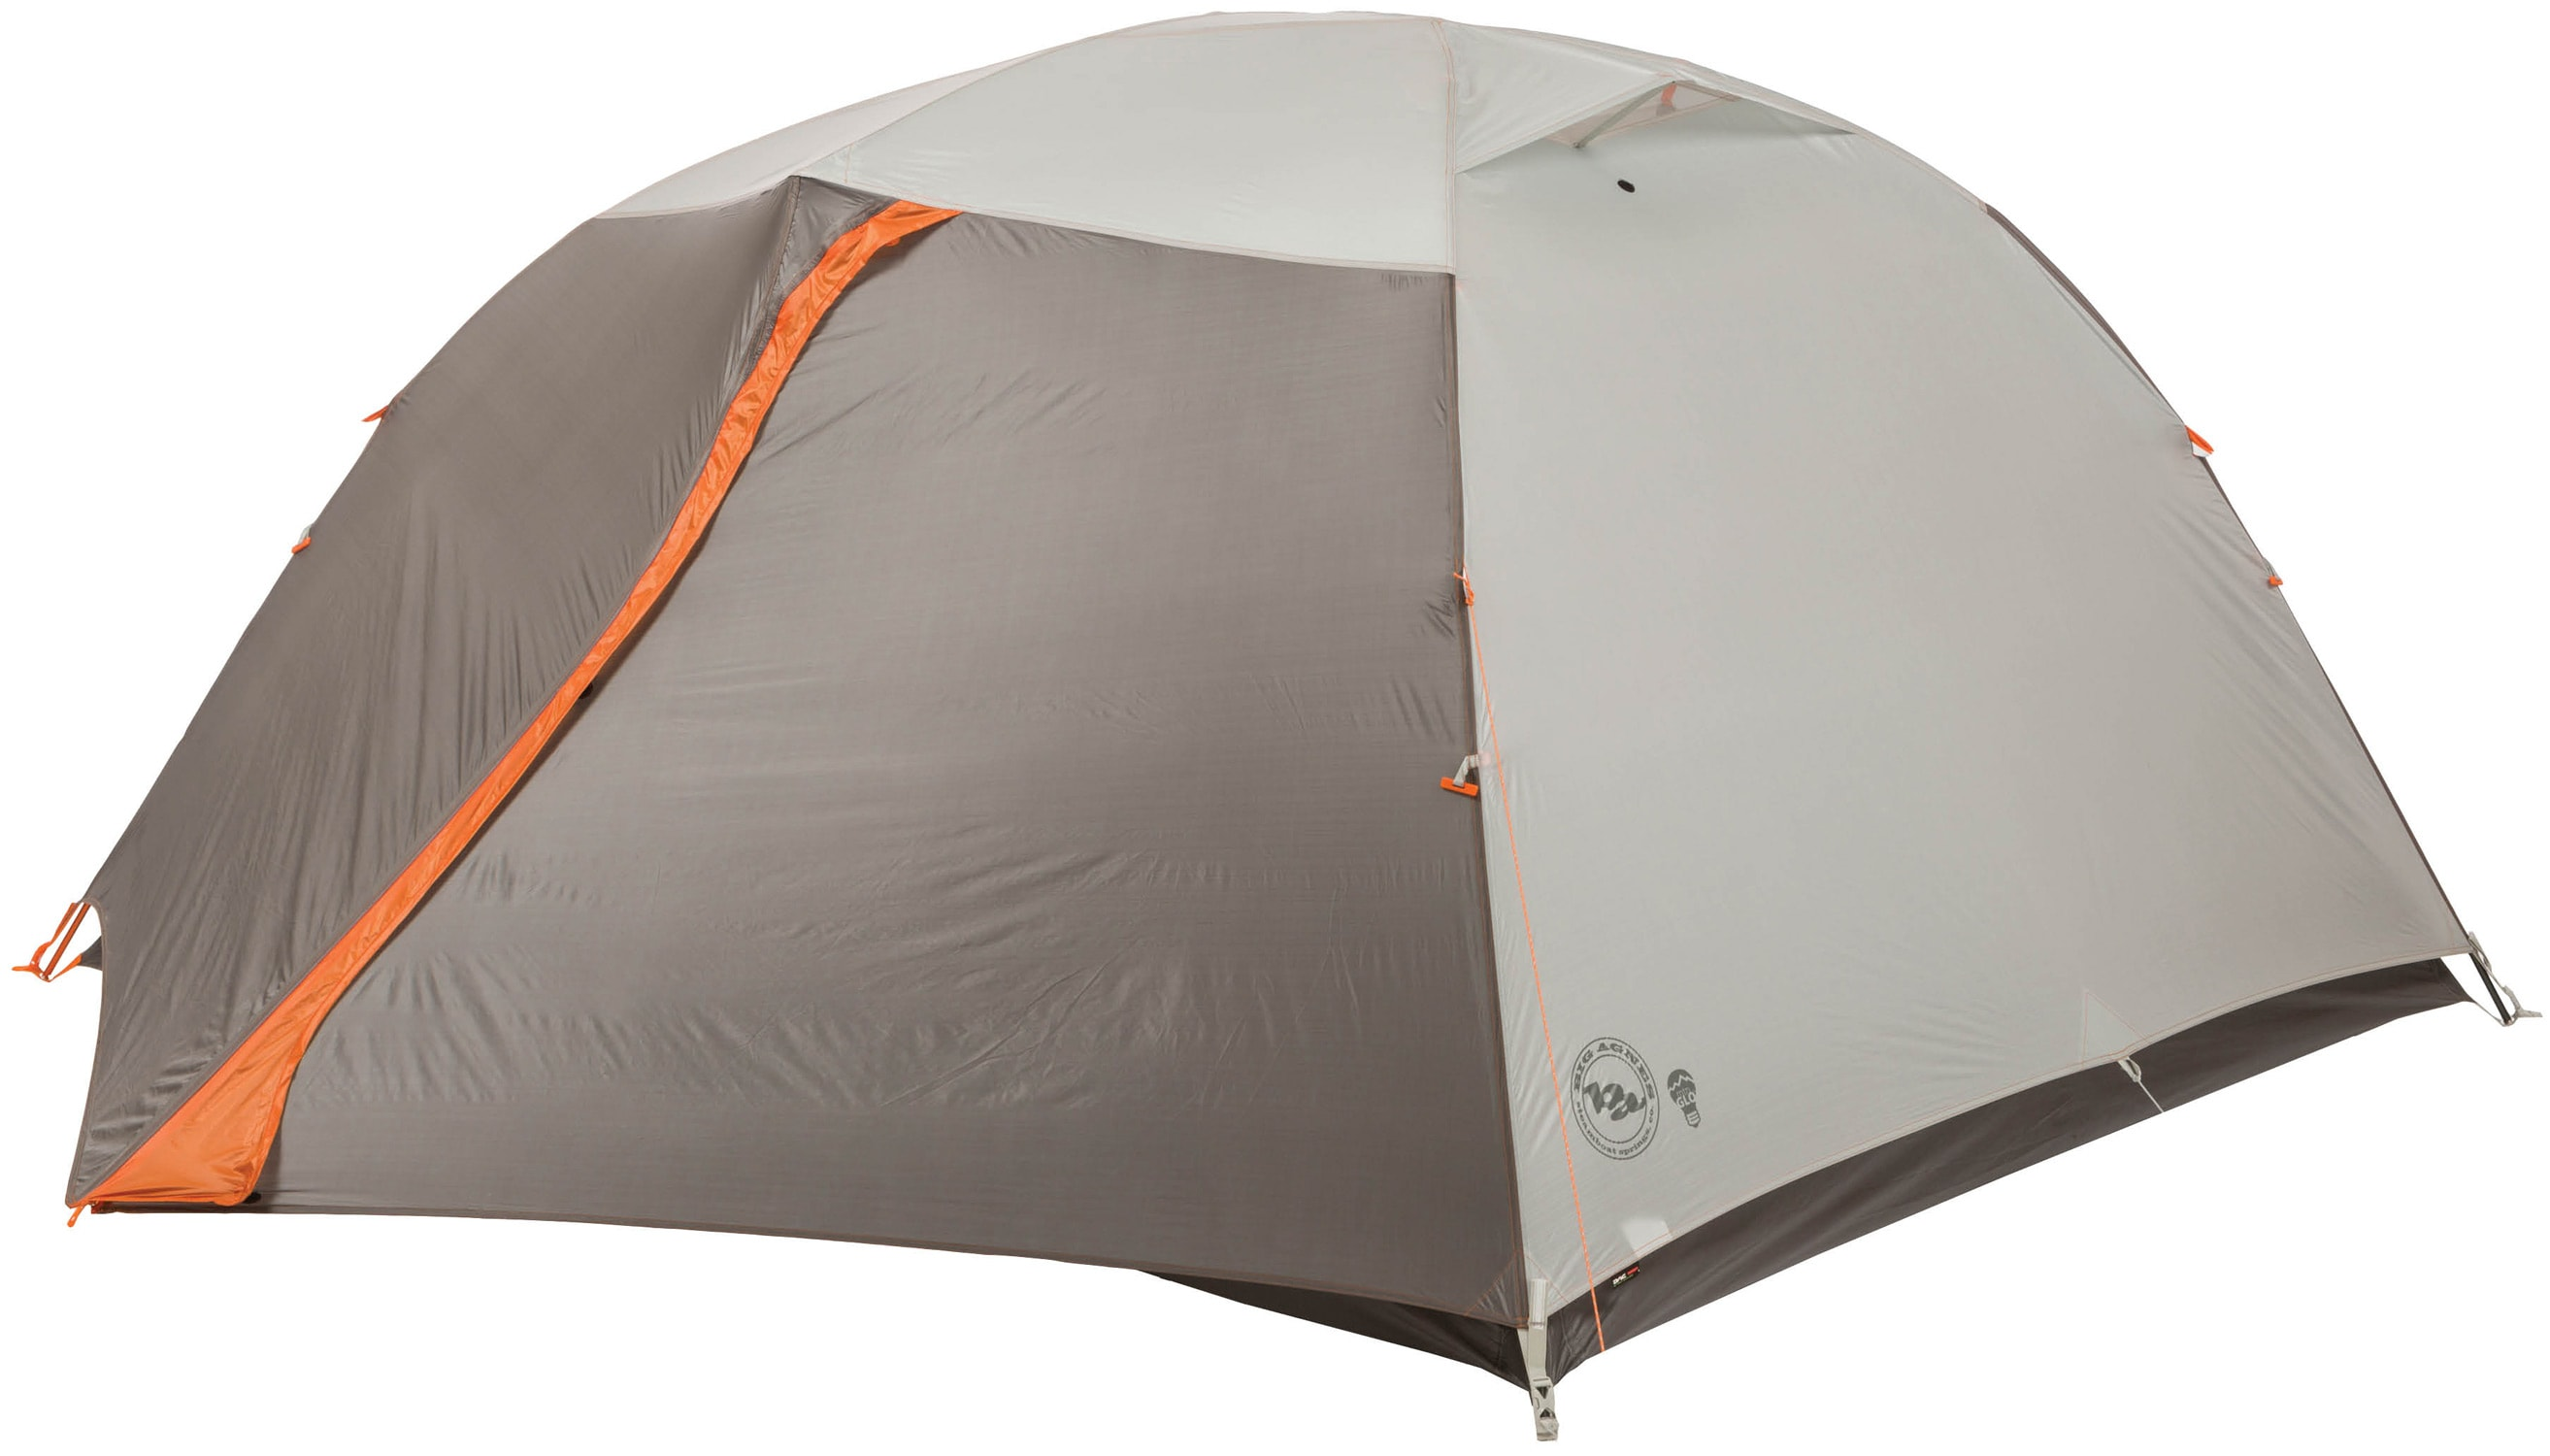 Big Agnes Copper Spur HV UL 3 MtnGLO Tent - thumbnail 2  sc 1 st  The House & Big Agnes Copper Spur HV UL 3 MtnGLO Tent 2018